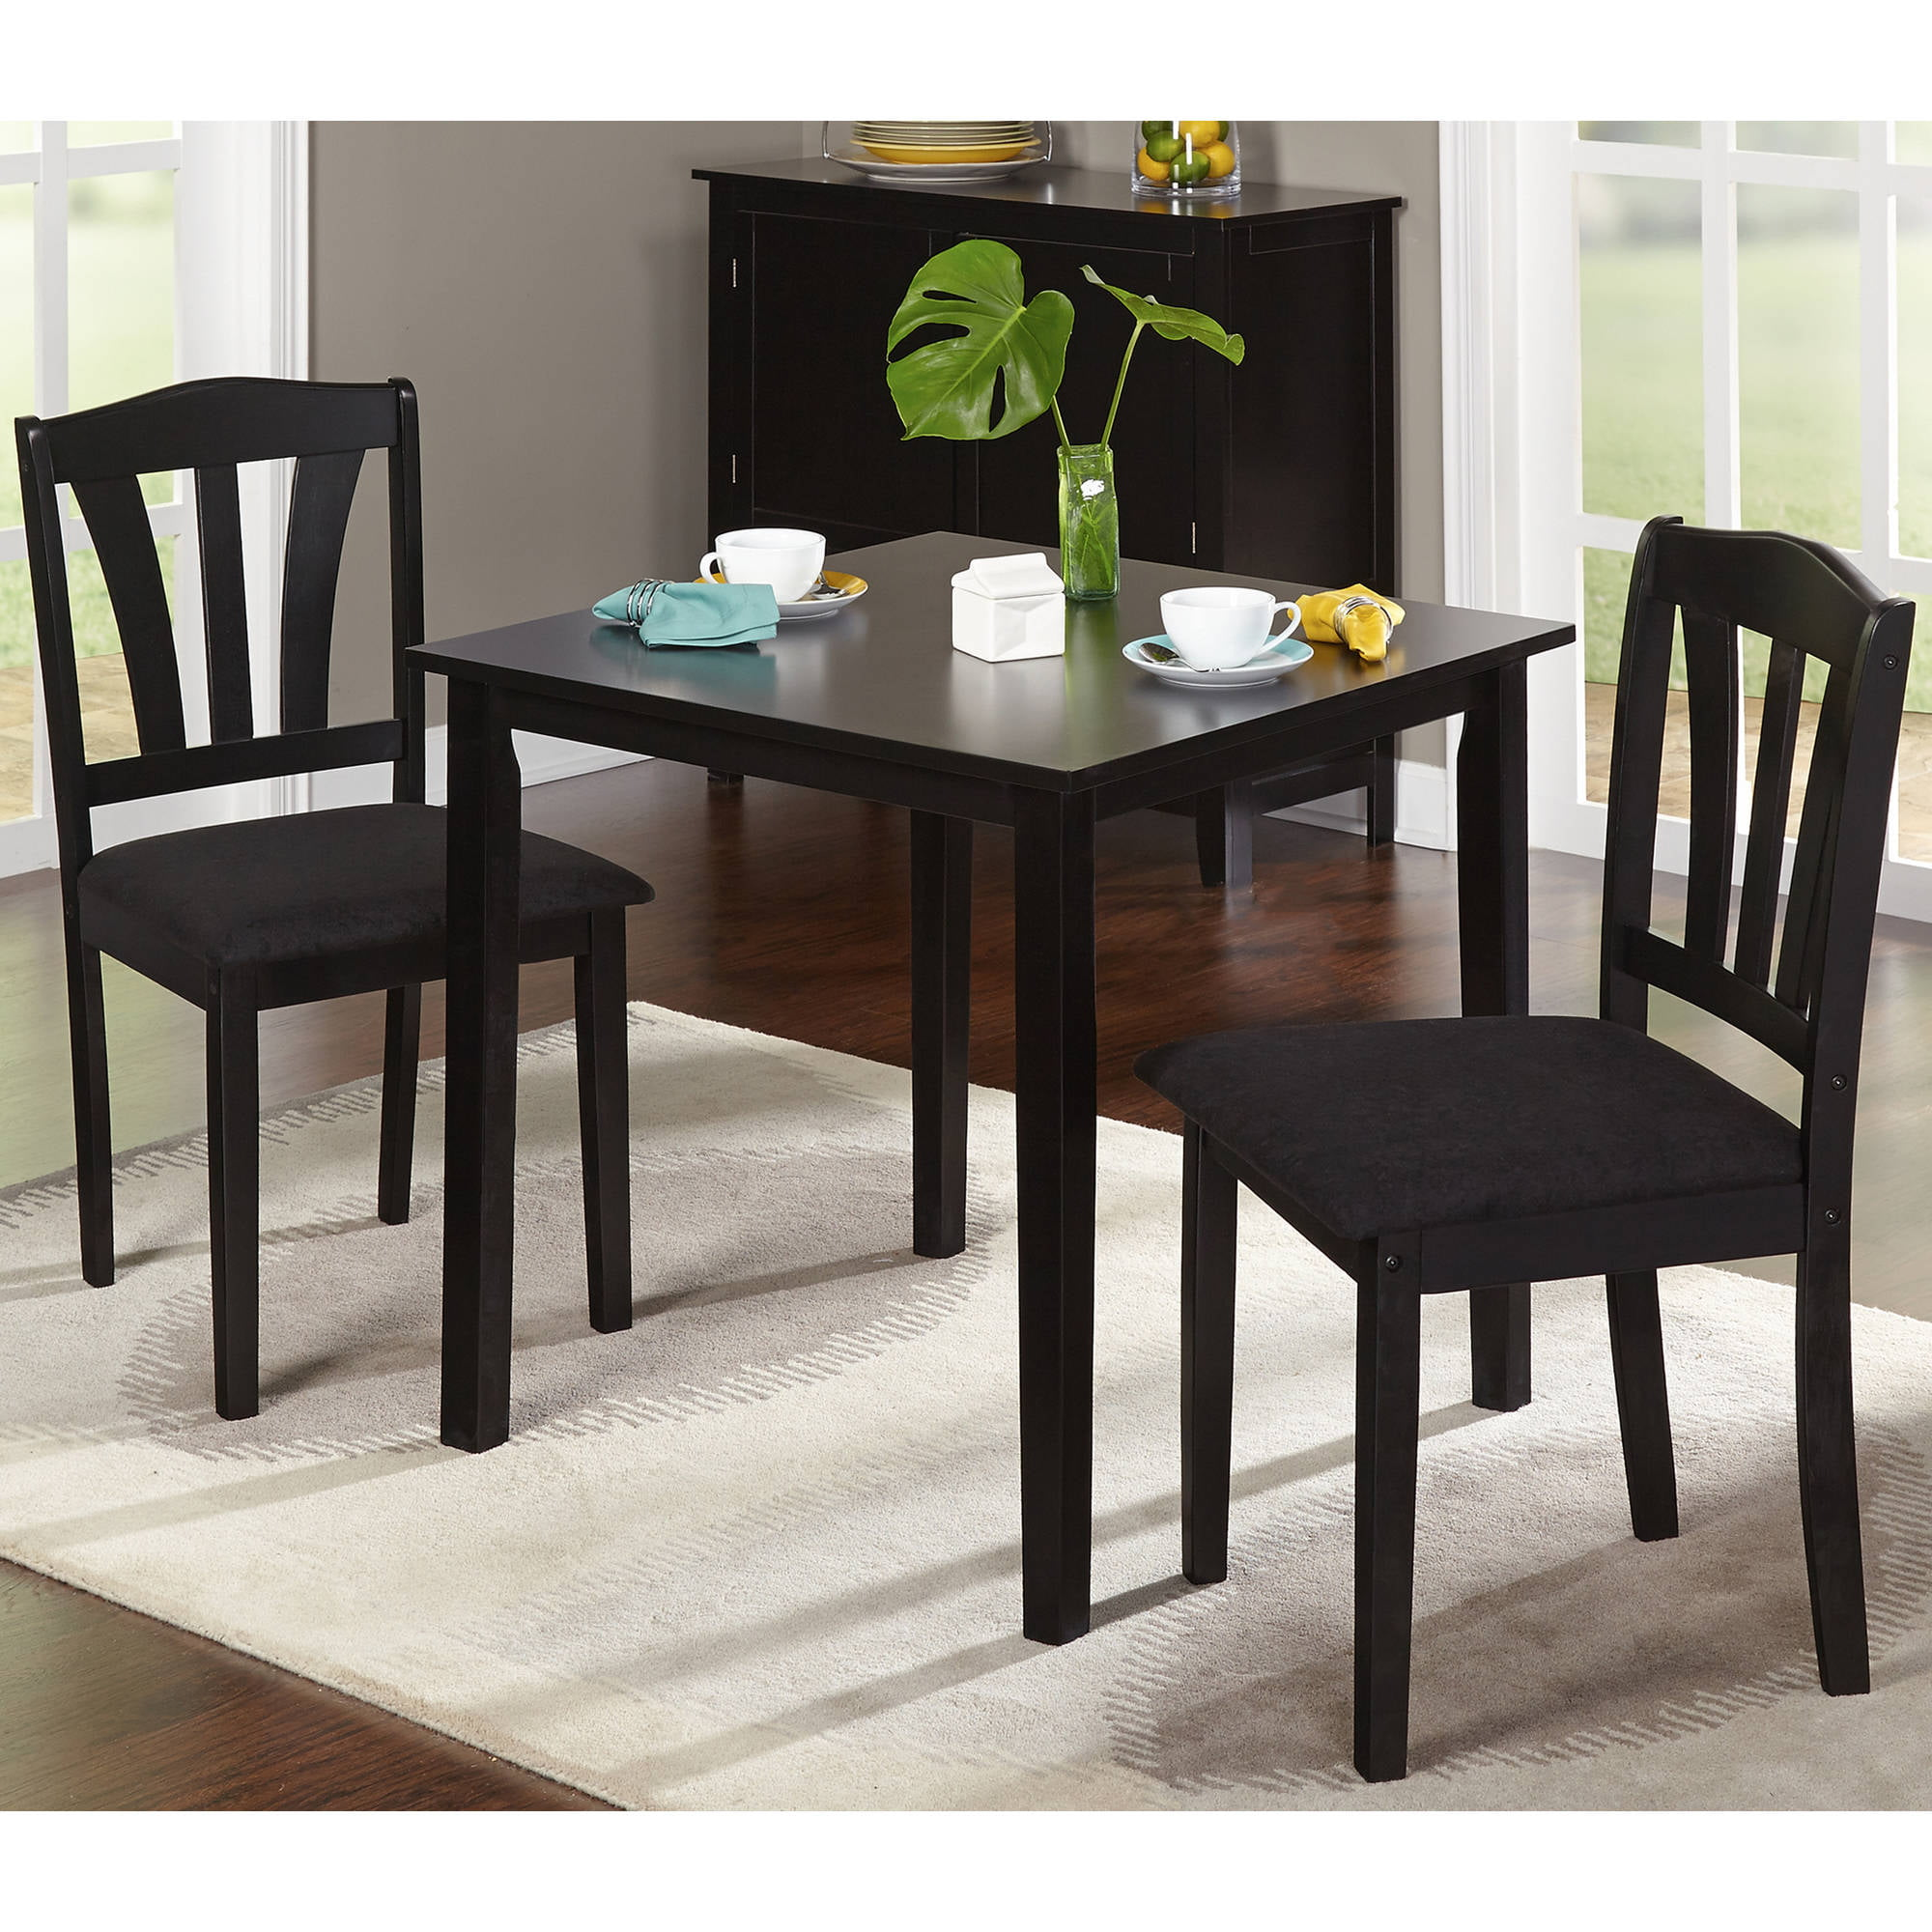 uk dining grey set pine amazon home and dp bistro natural chairs co kitchen annika silk table in small